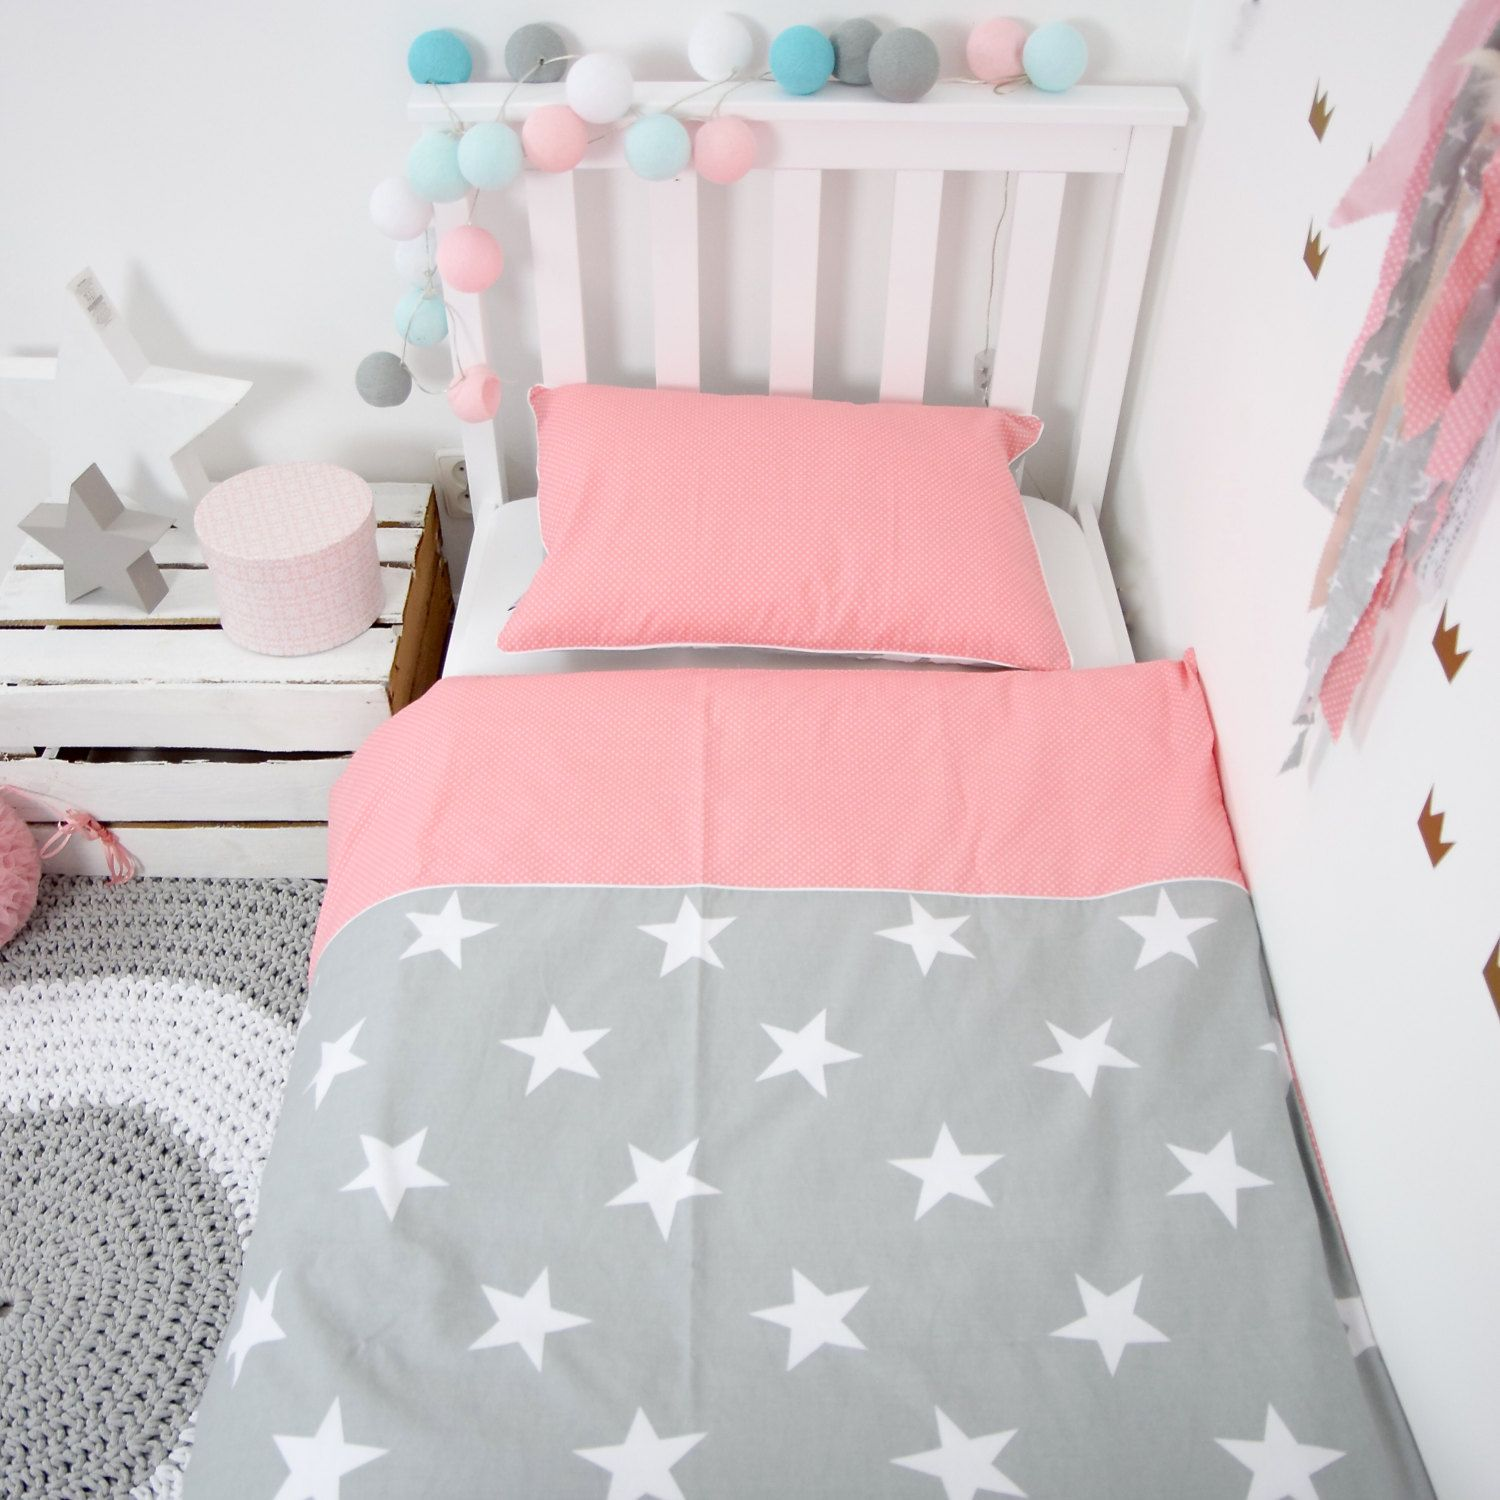 Baby Bedding Crib Bedding Set Nursery Bedding Toddler Bedding Kids Bed Set Double Sided Reversible Coral Pink And Grey Kids Bedding Sets Crib Bedding Baby Bed